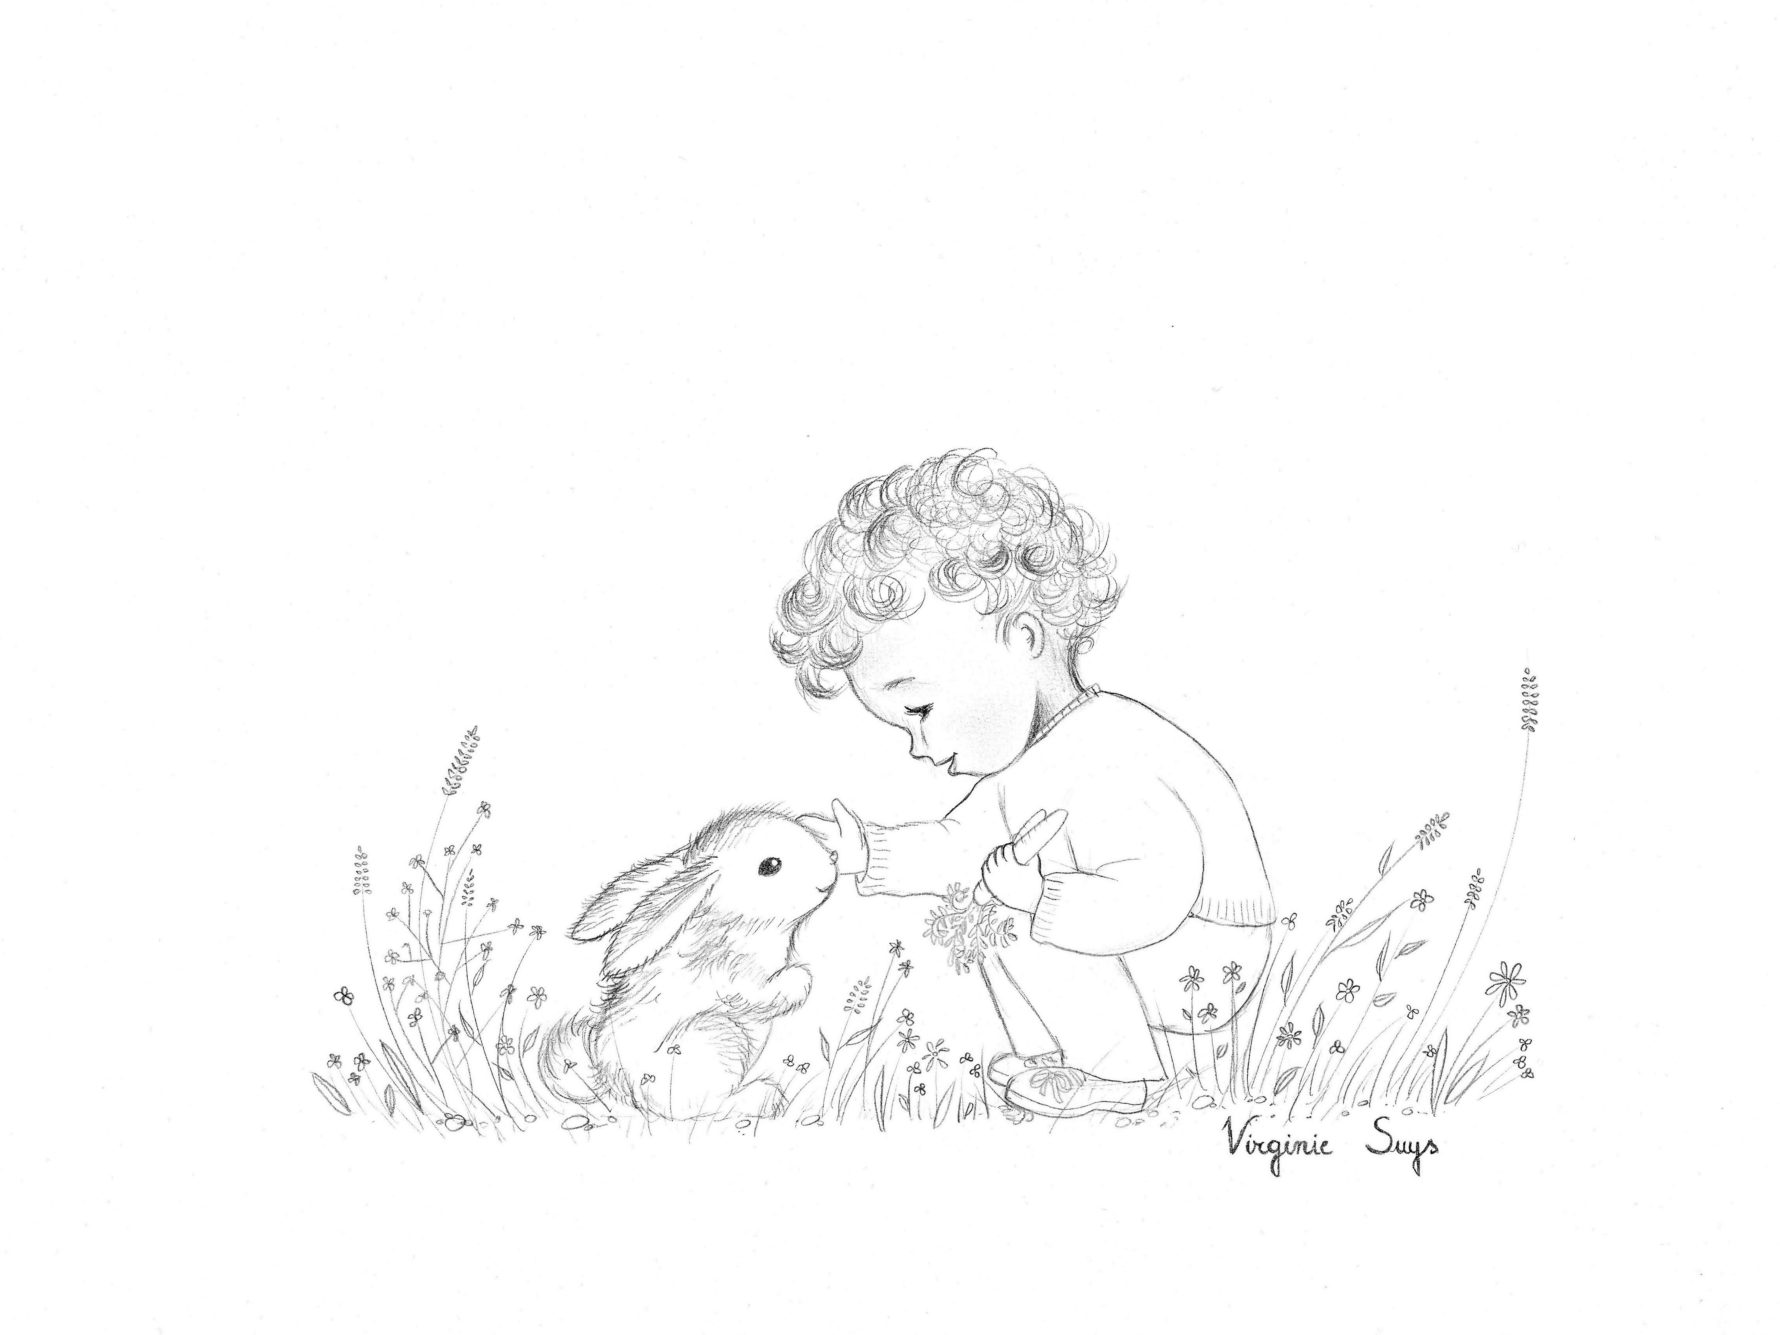 Virginie Suys Boy with rabbit in black & white illustration